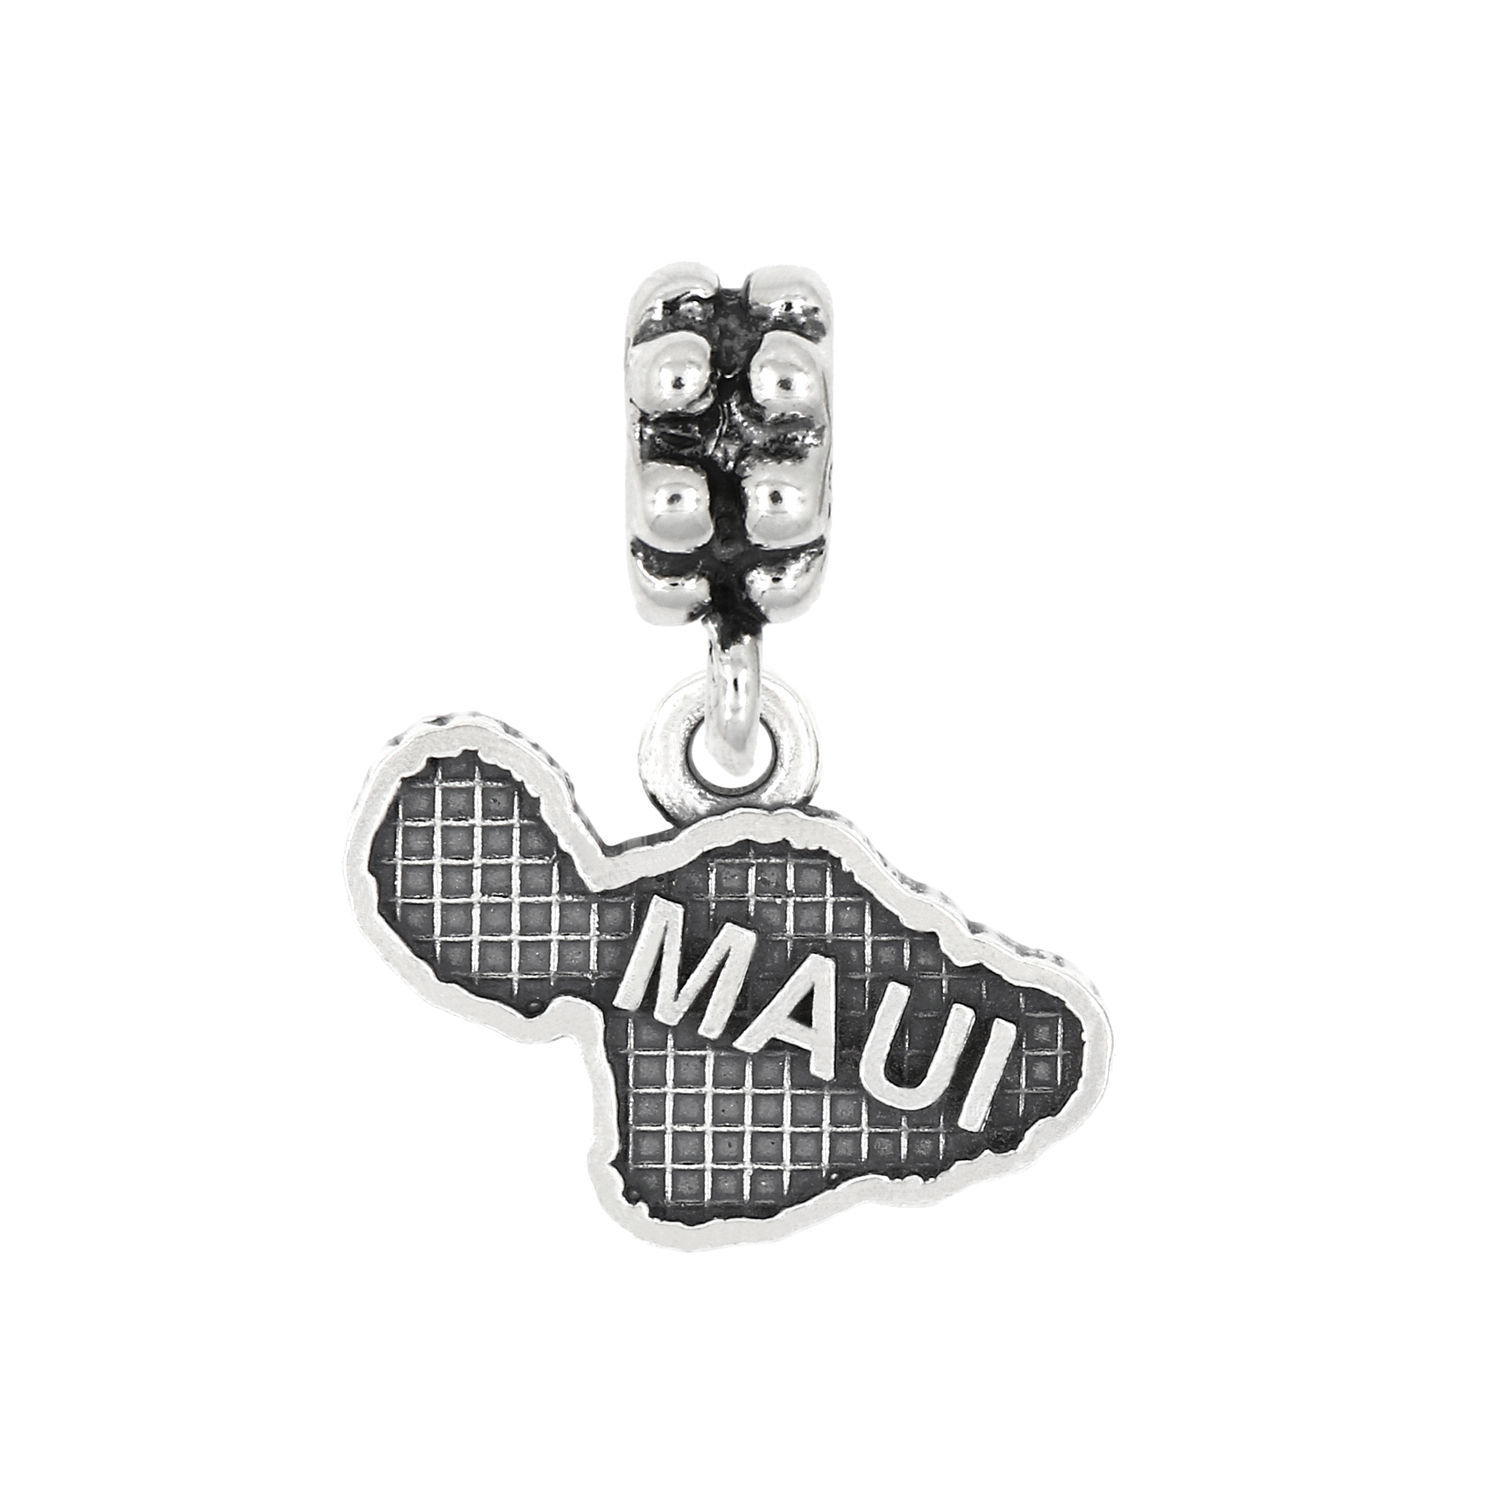 STERLING SILVER DANGLE ISLAND OF MAUI BEAD CHARM